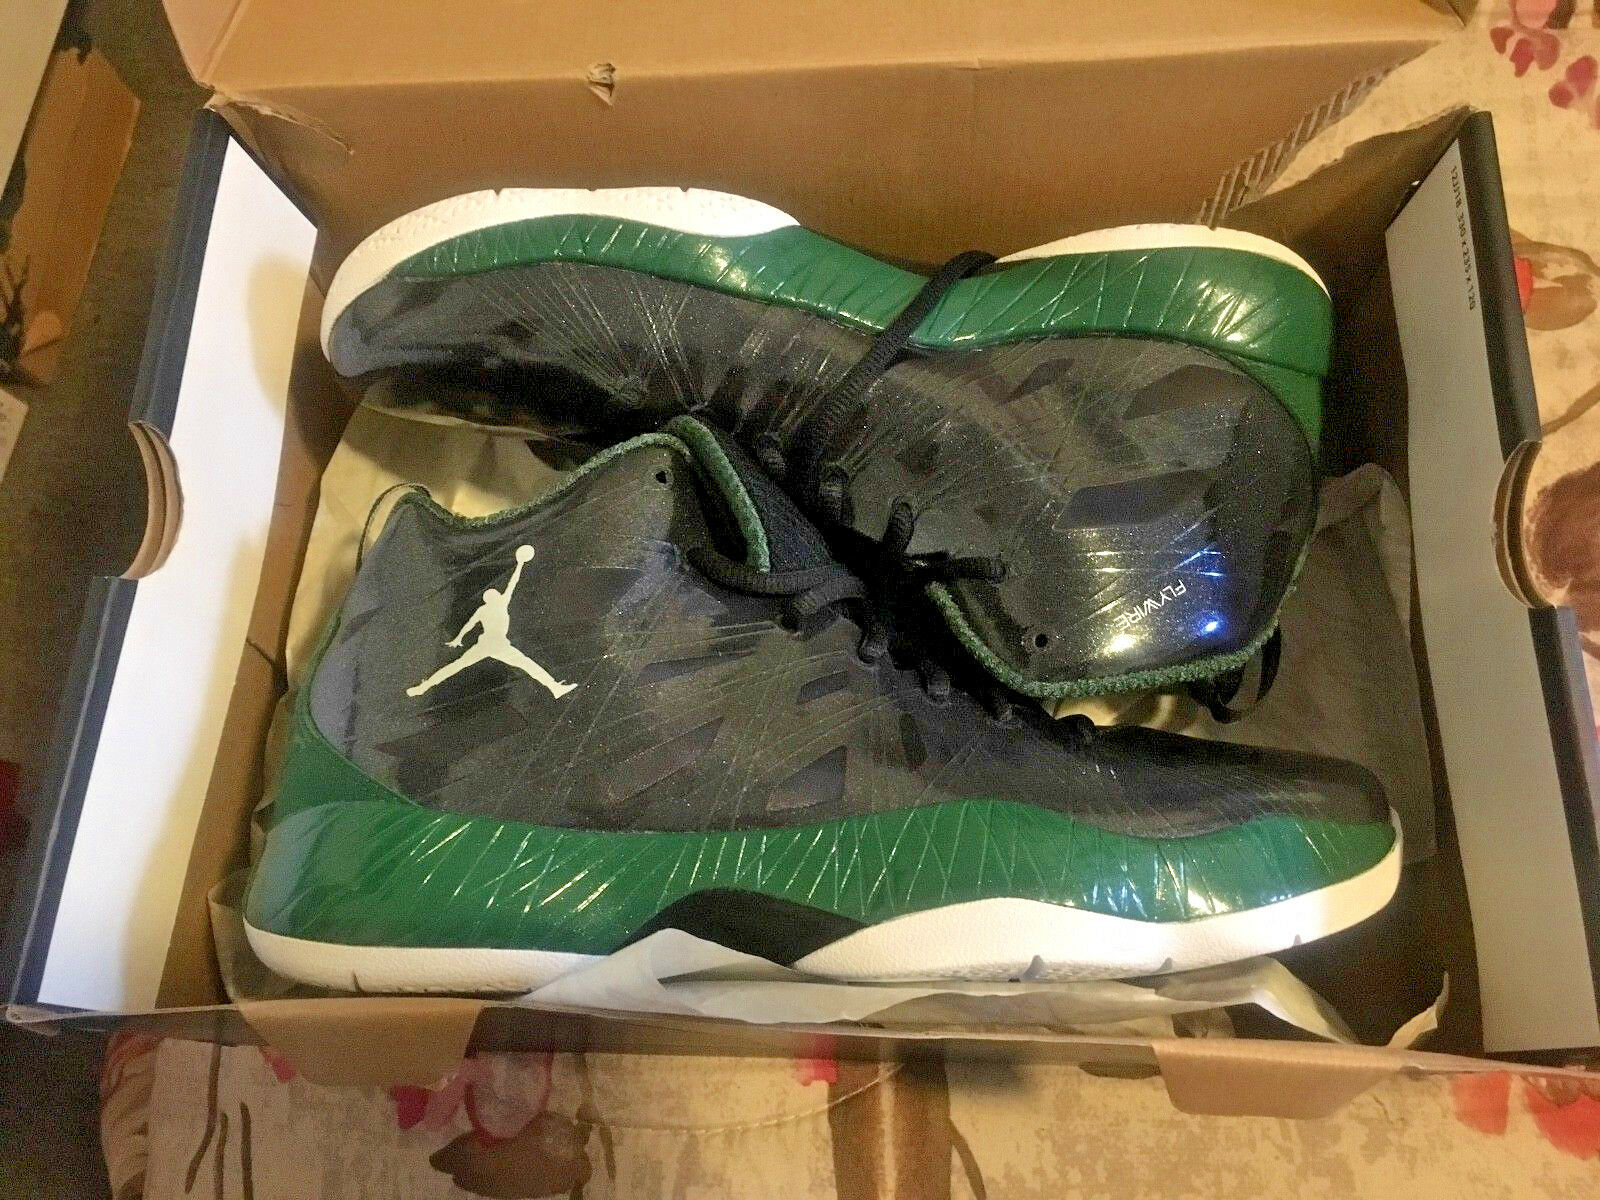 Nike Air Jordan 2012 Lite, Size 9.5, Flywire, DS, Retail color black , green and